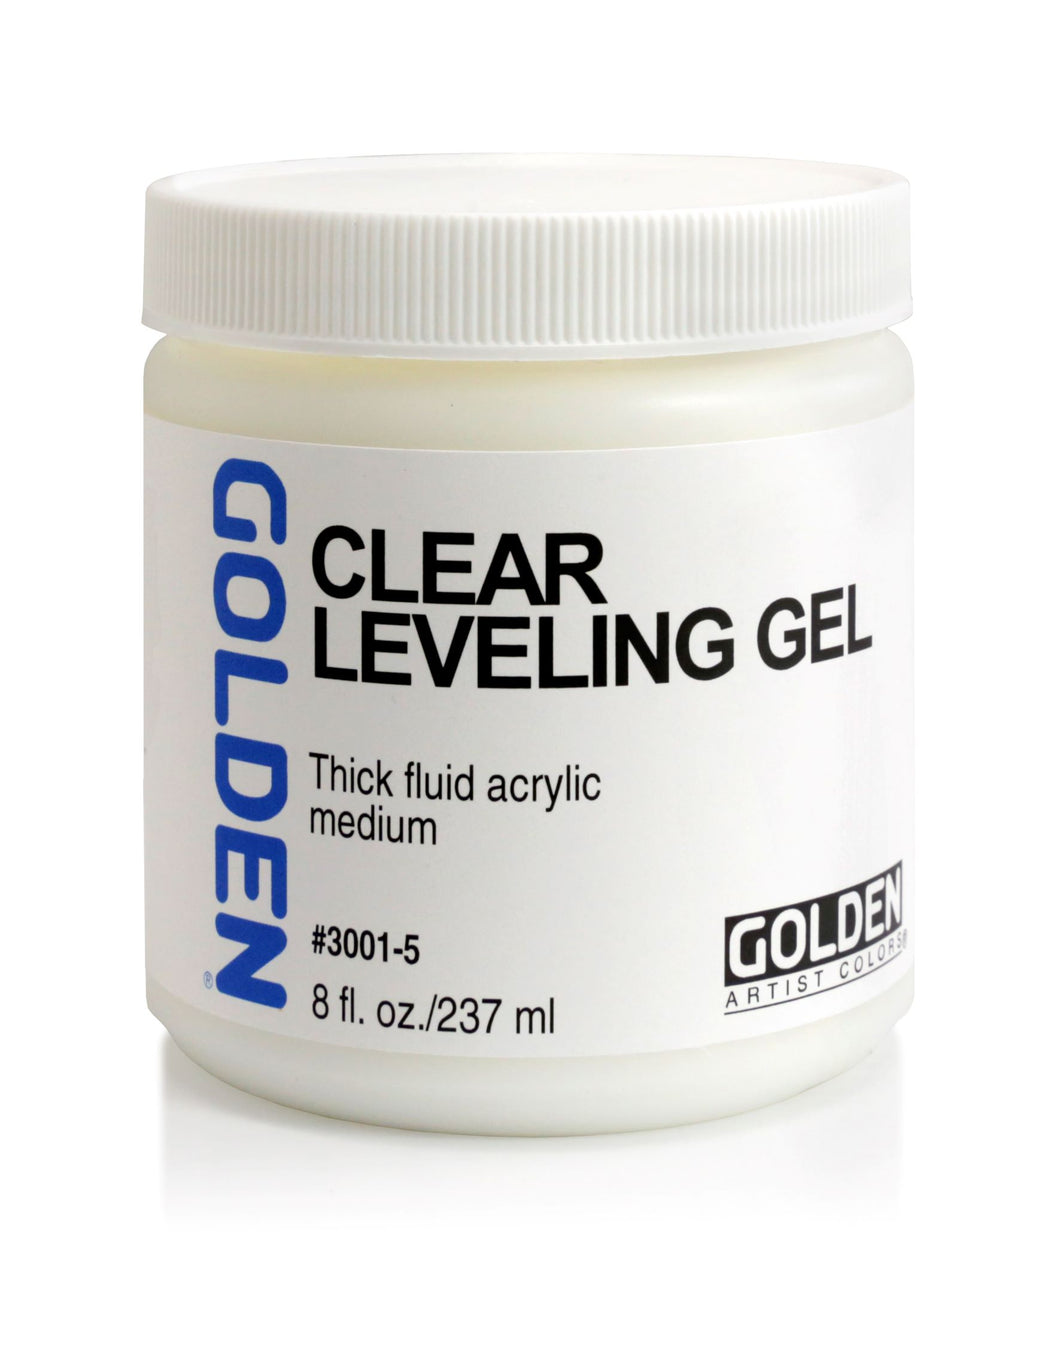 Golden Clear Leveling Gel